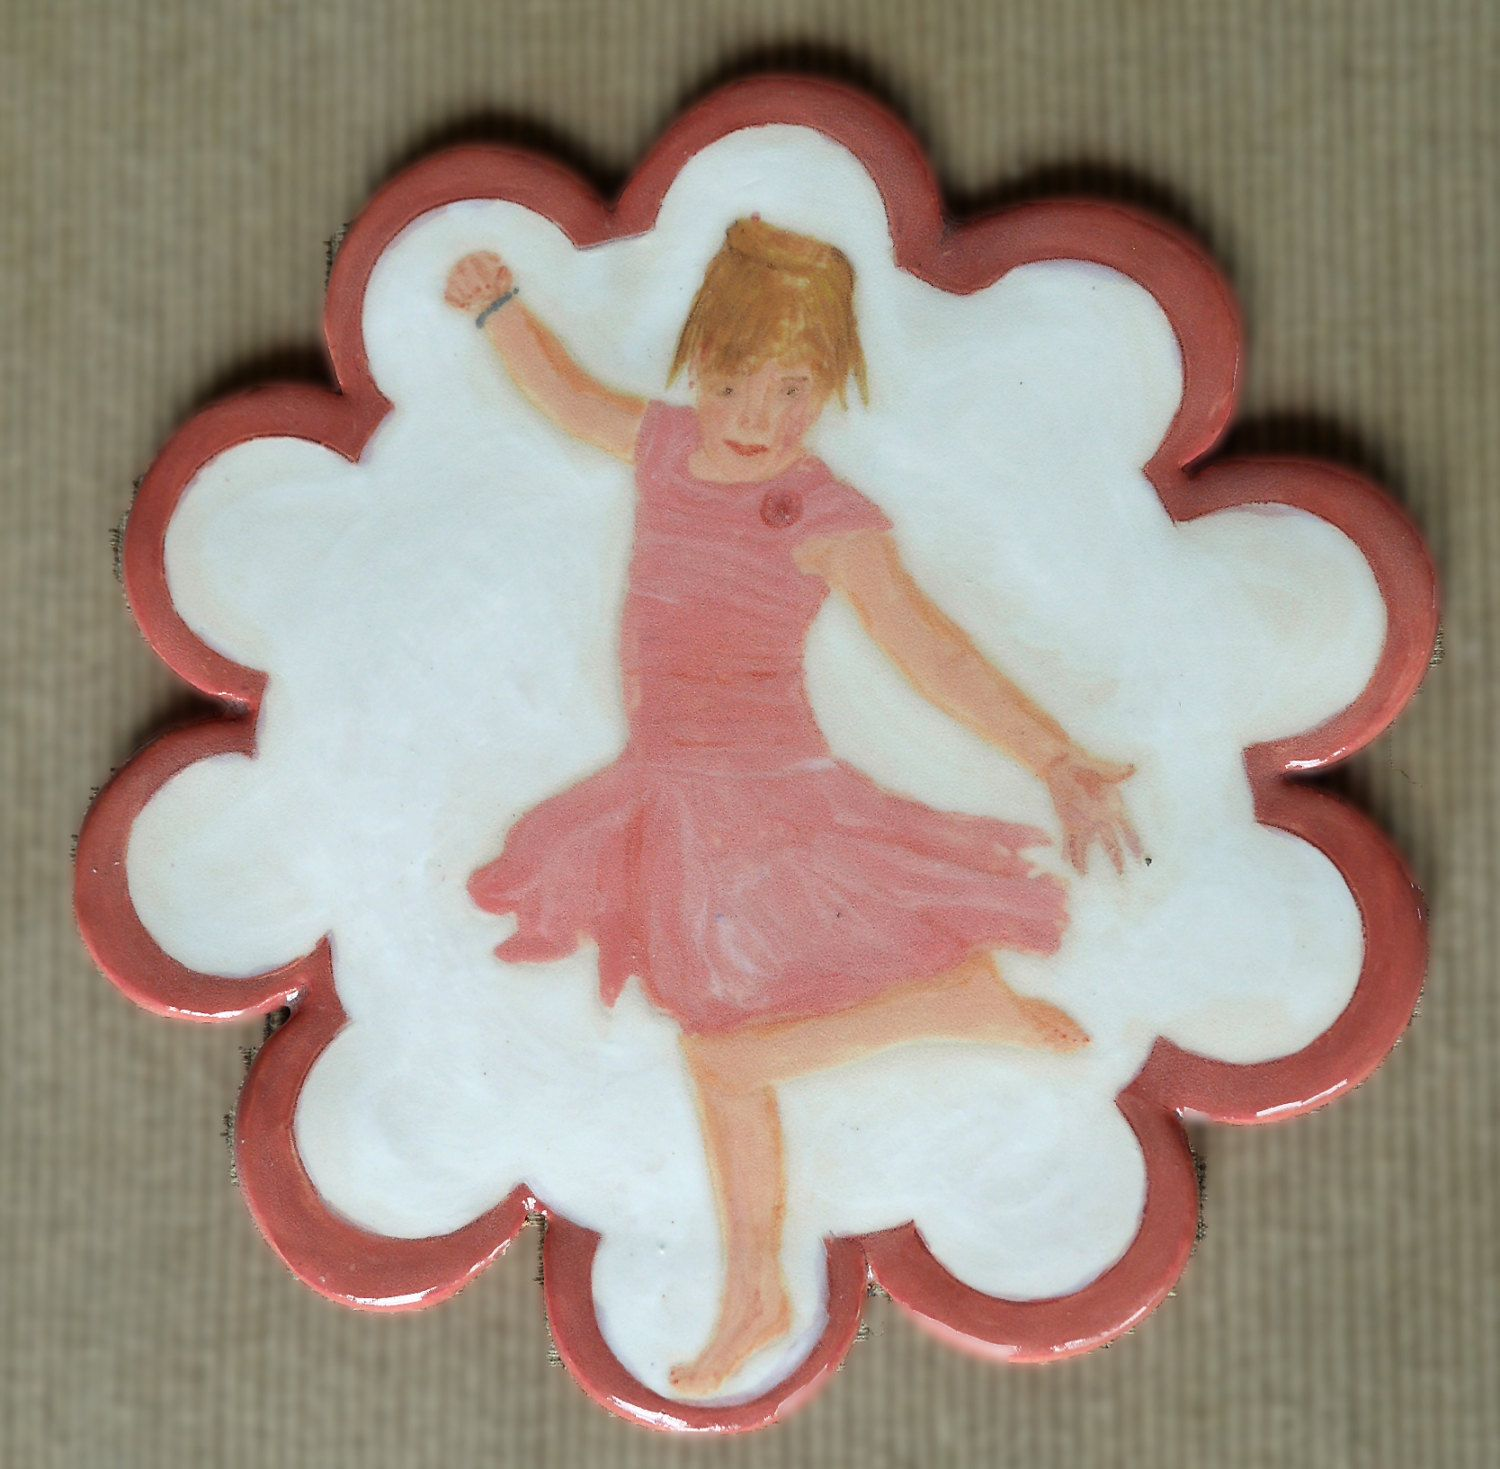 Your child or grandchild hand painted on a trivet from your favorite photo by CeramicsByKK on Etsy